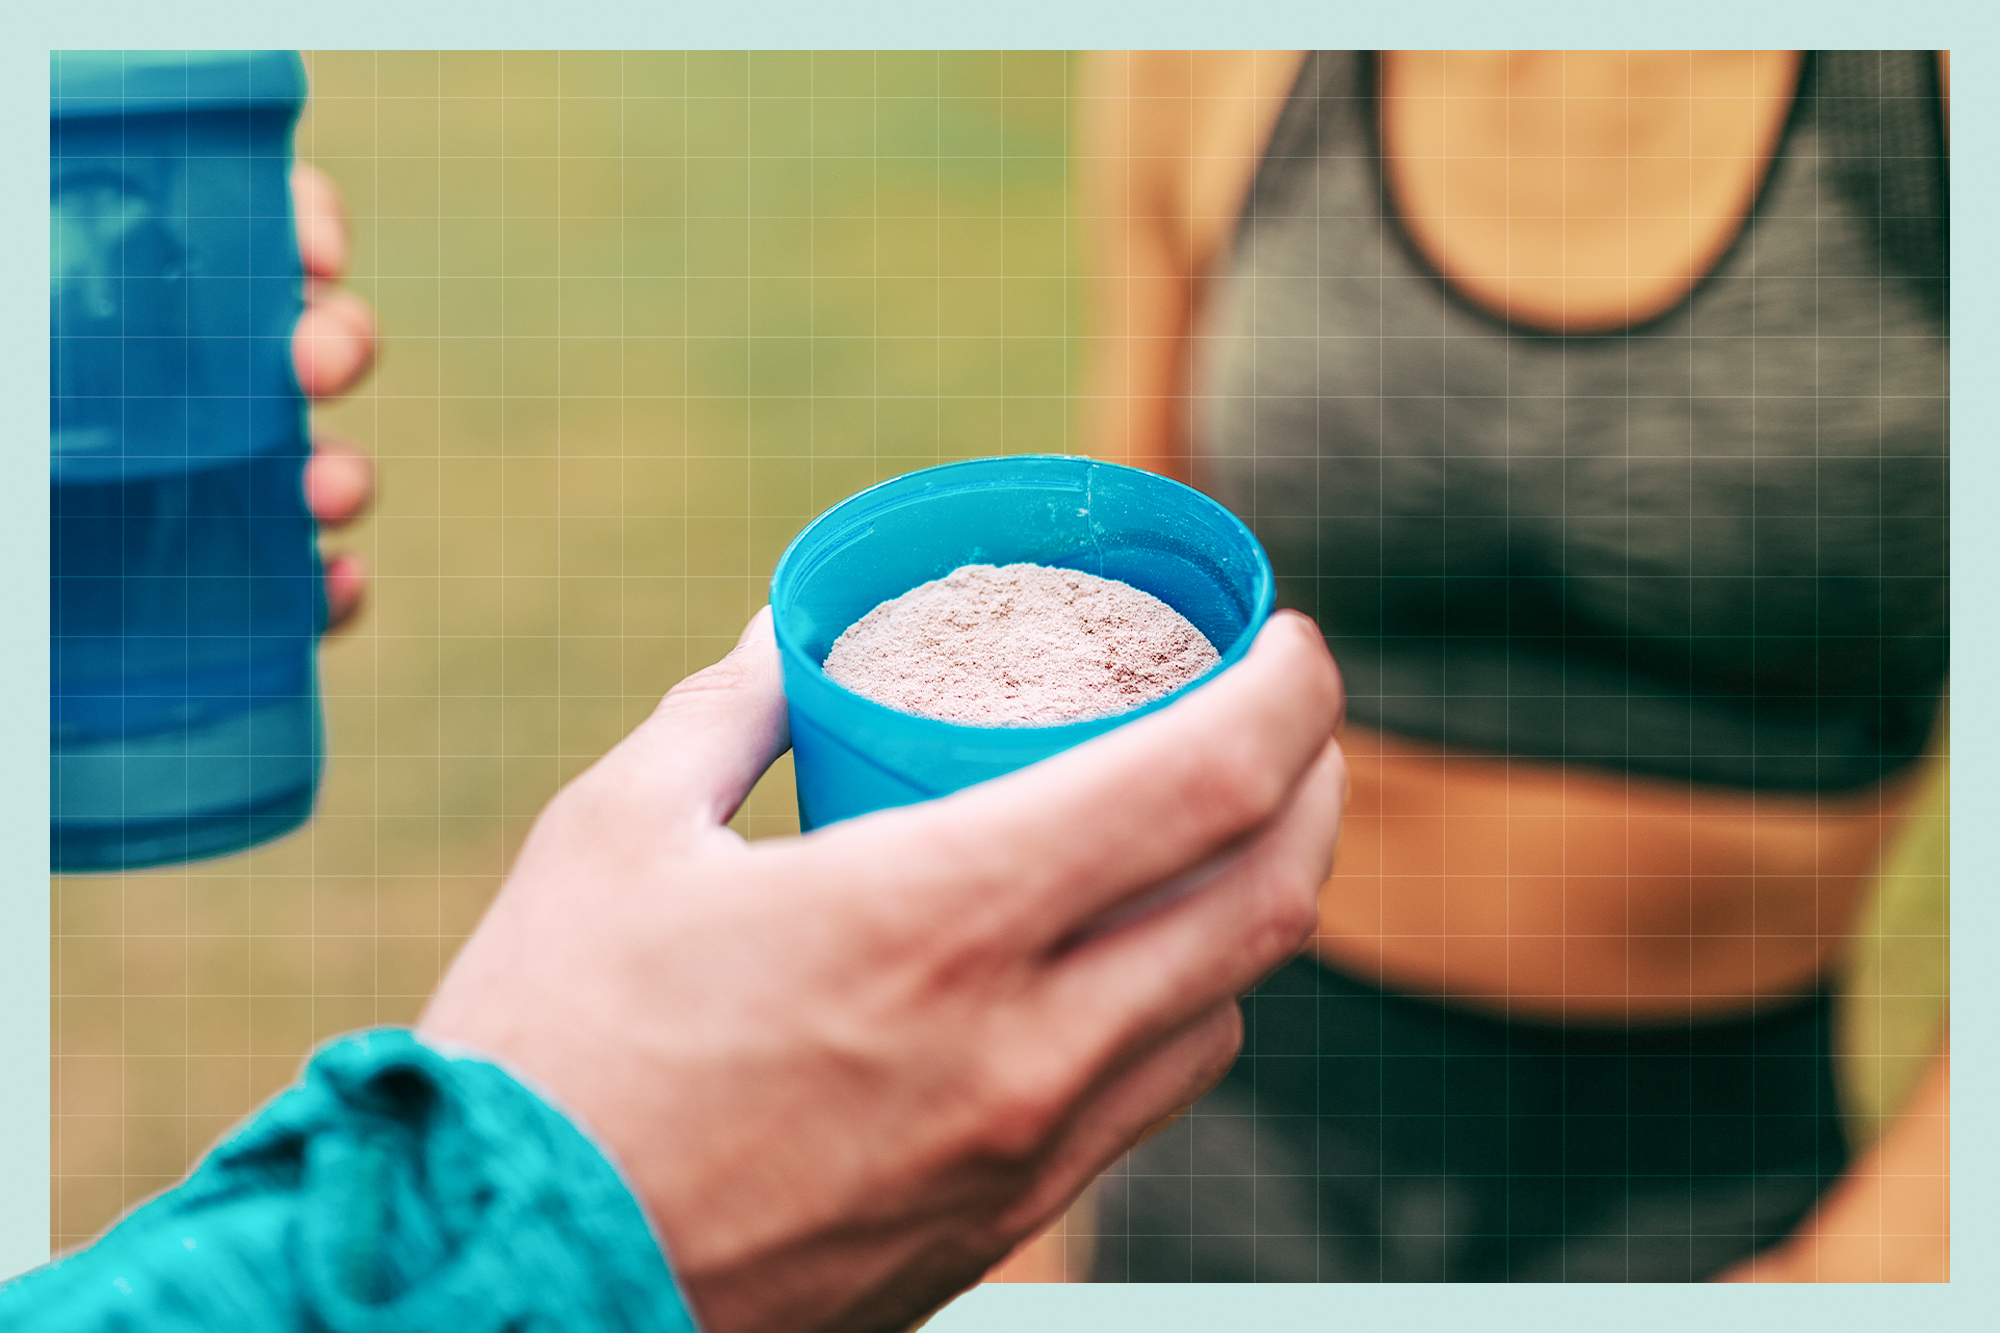 A hand holding a container full of protein powder ready to go into a protein shake. in the background is a shake bottle and a woman in workout clothes